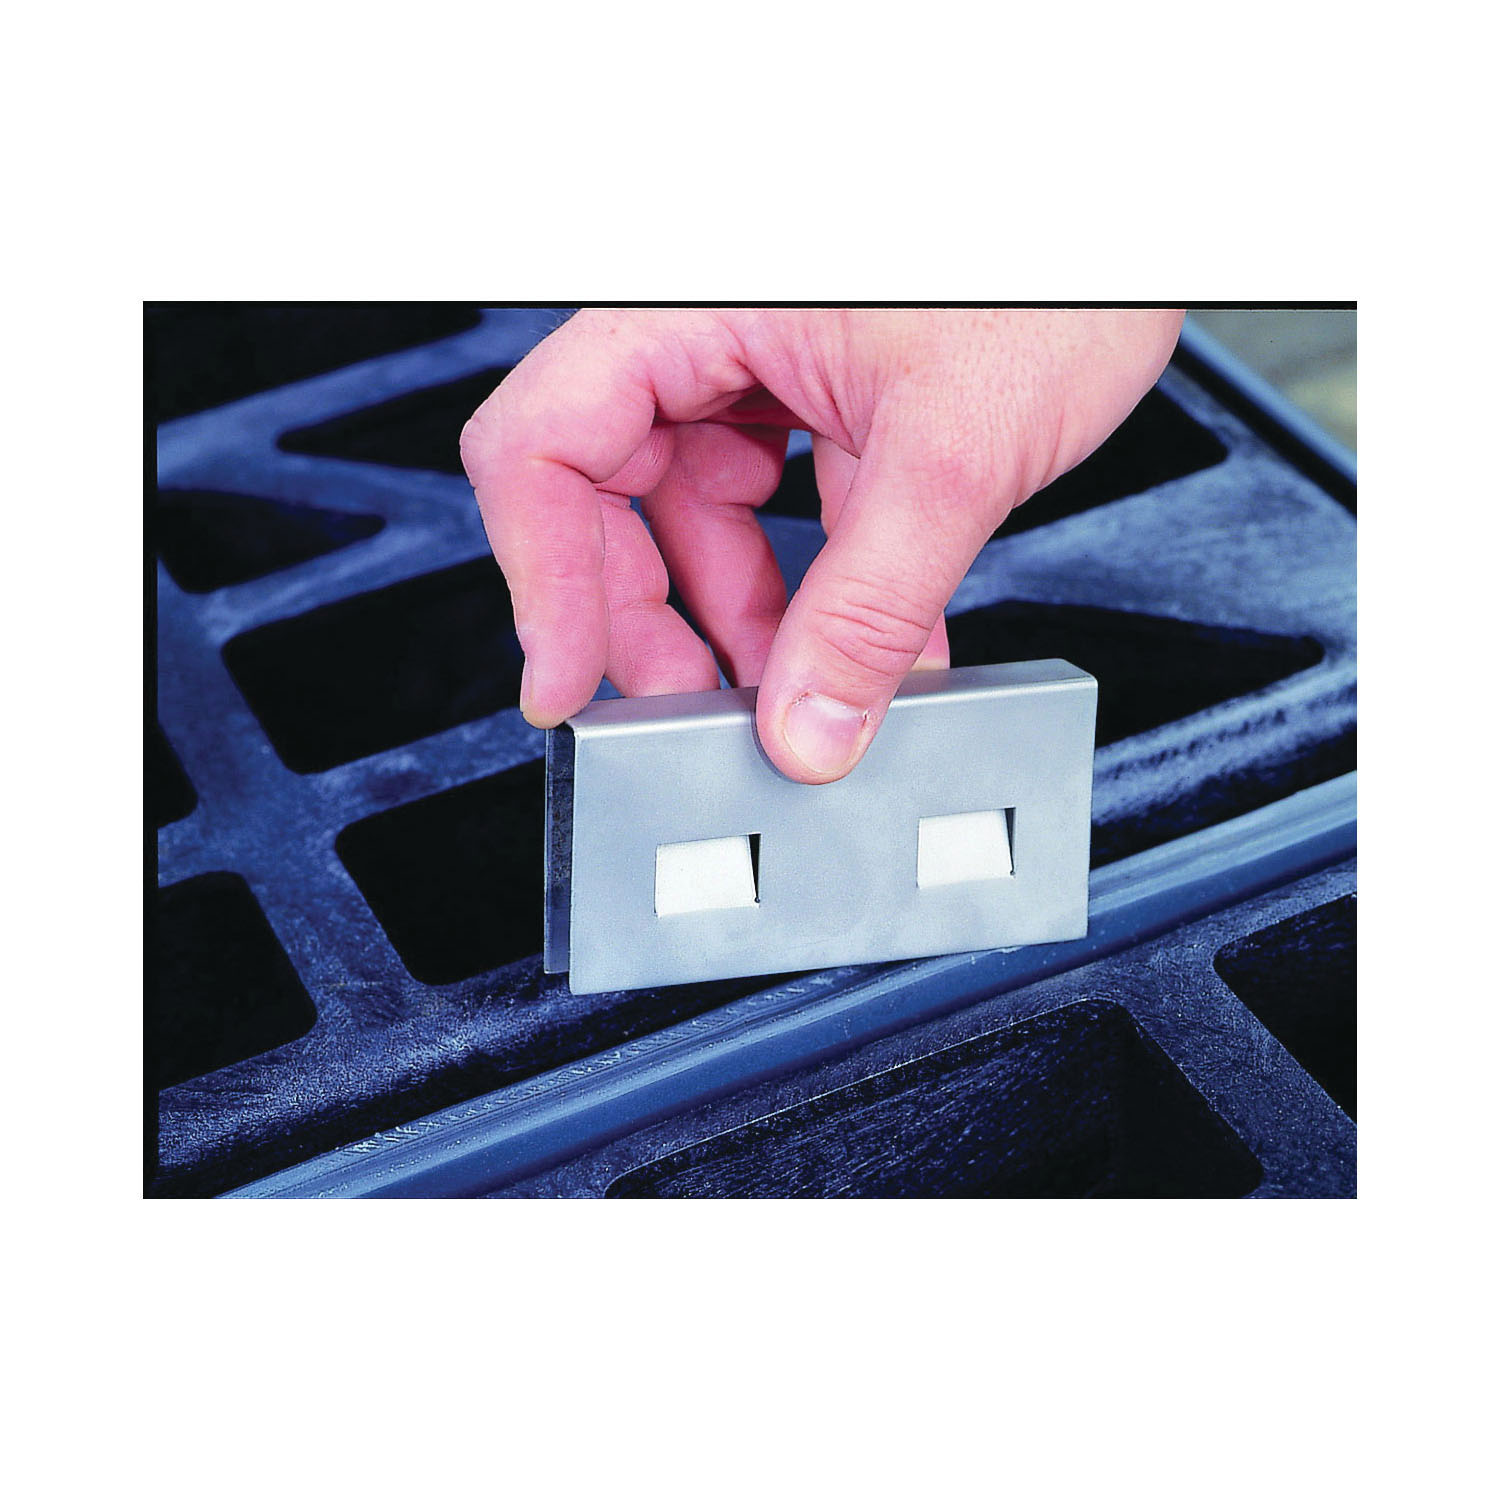 Justrite® 28926 Joining Clip, For Use With EcoPolyBlend™ Accumulation Centers, 4 in H x 2 in W, Stainless Steel, Silver